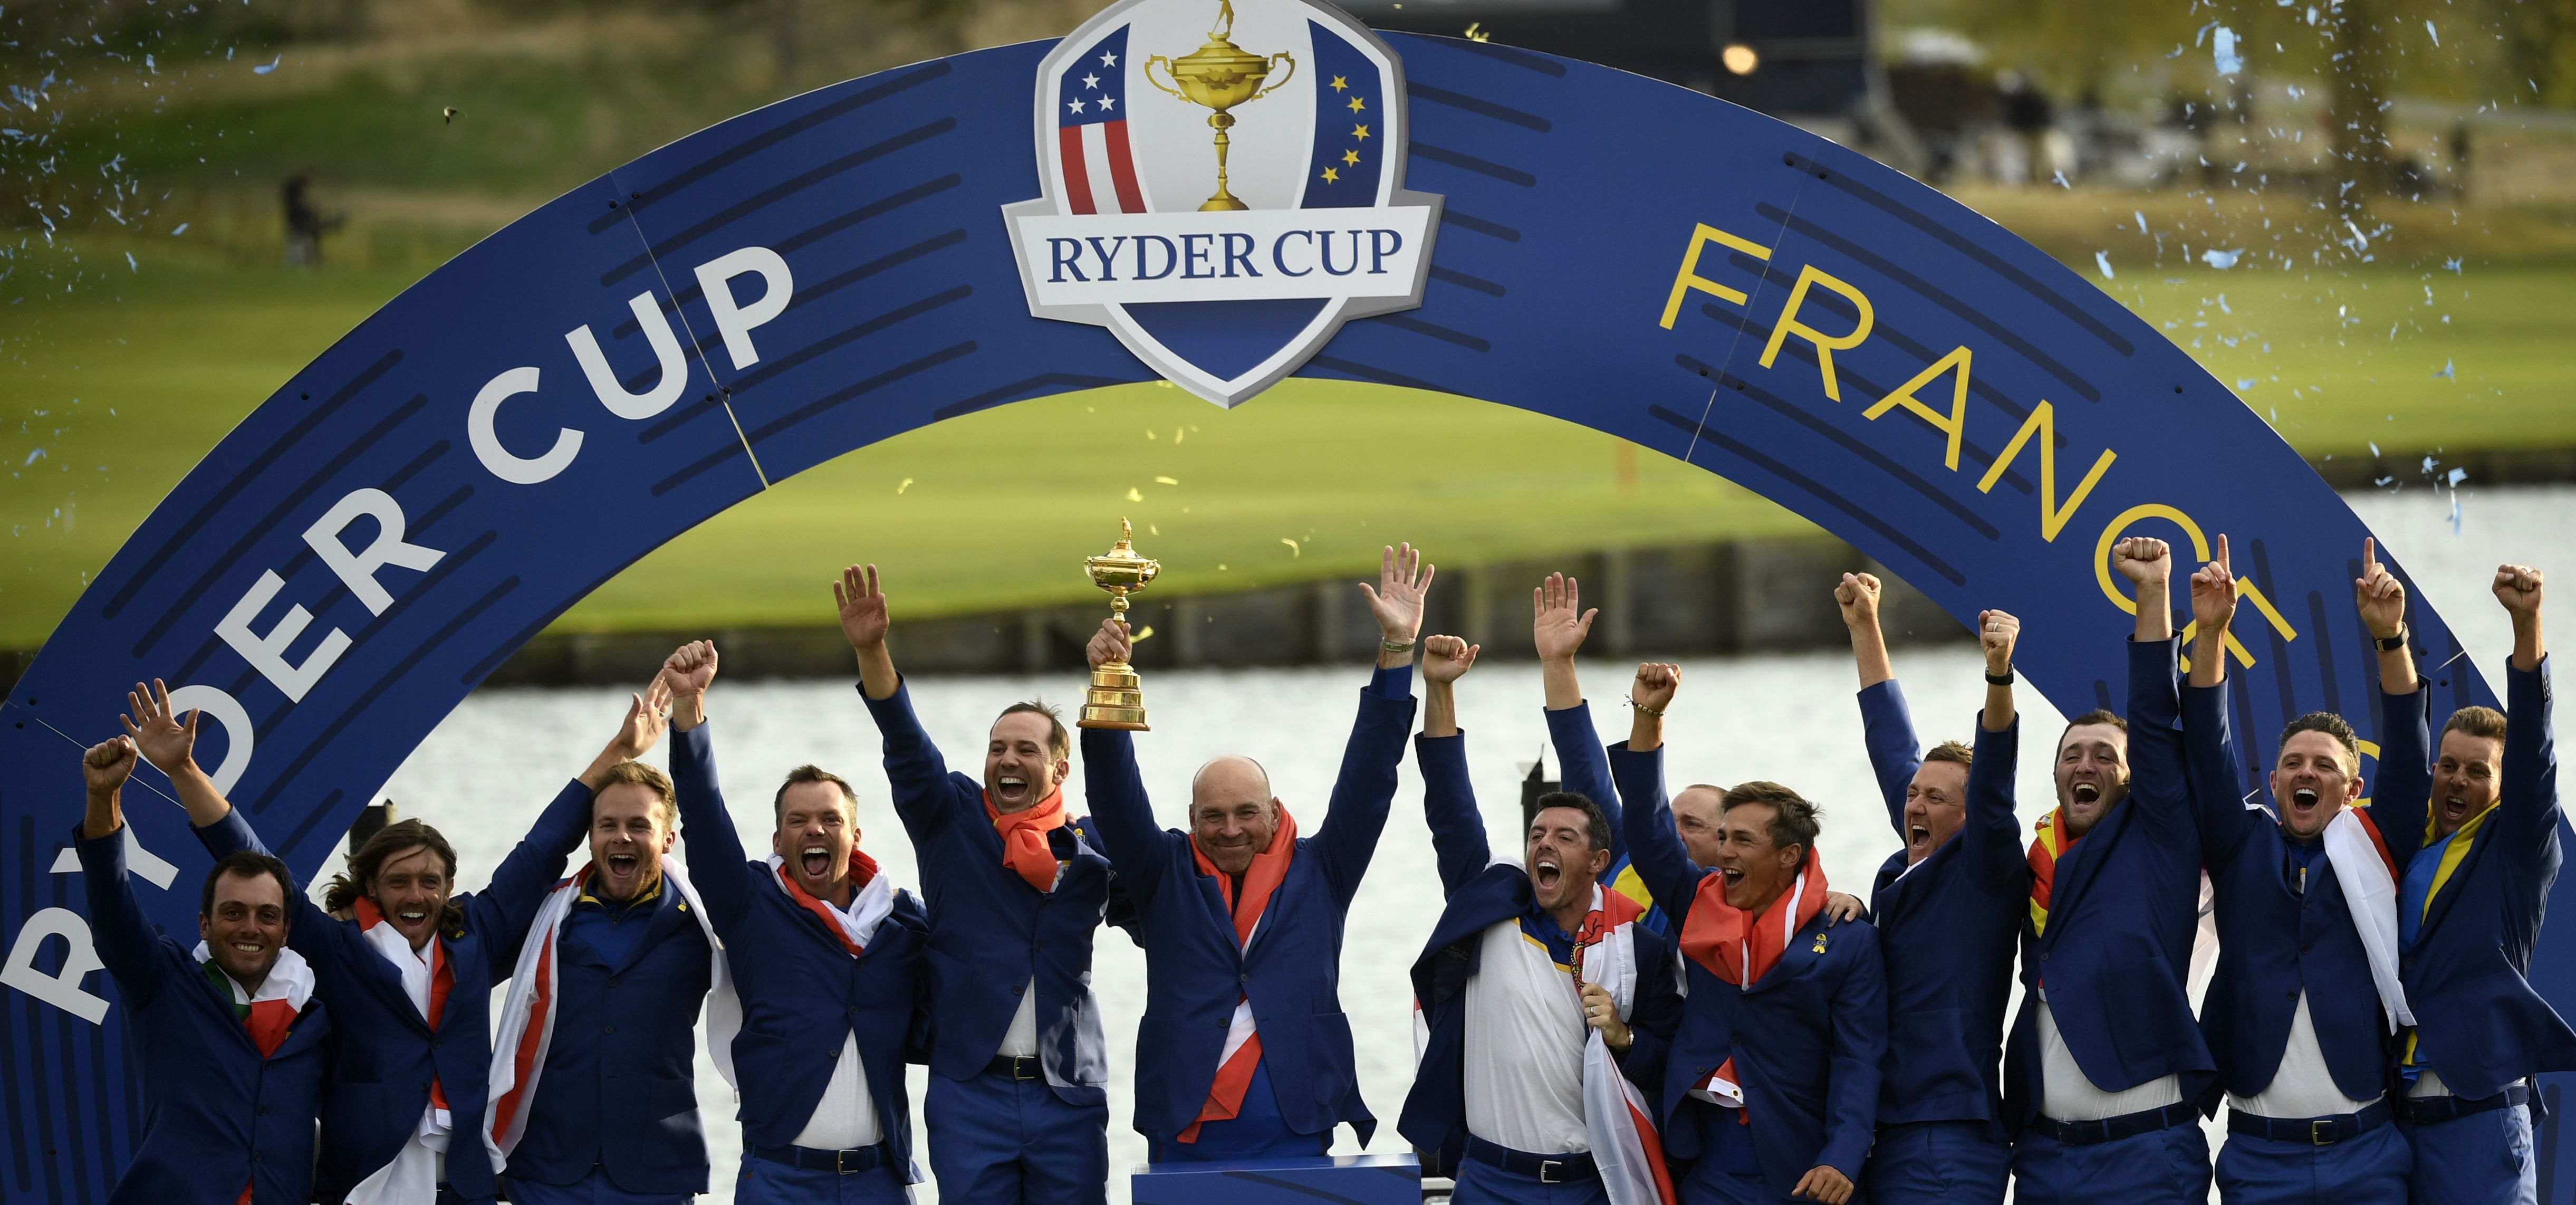 Team Europe at the 2018 Ryder Cup